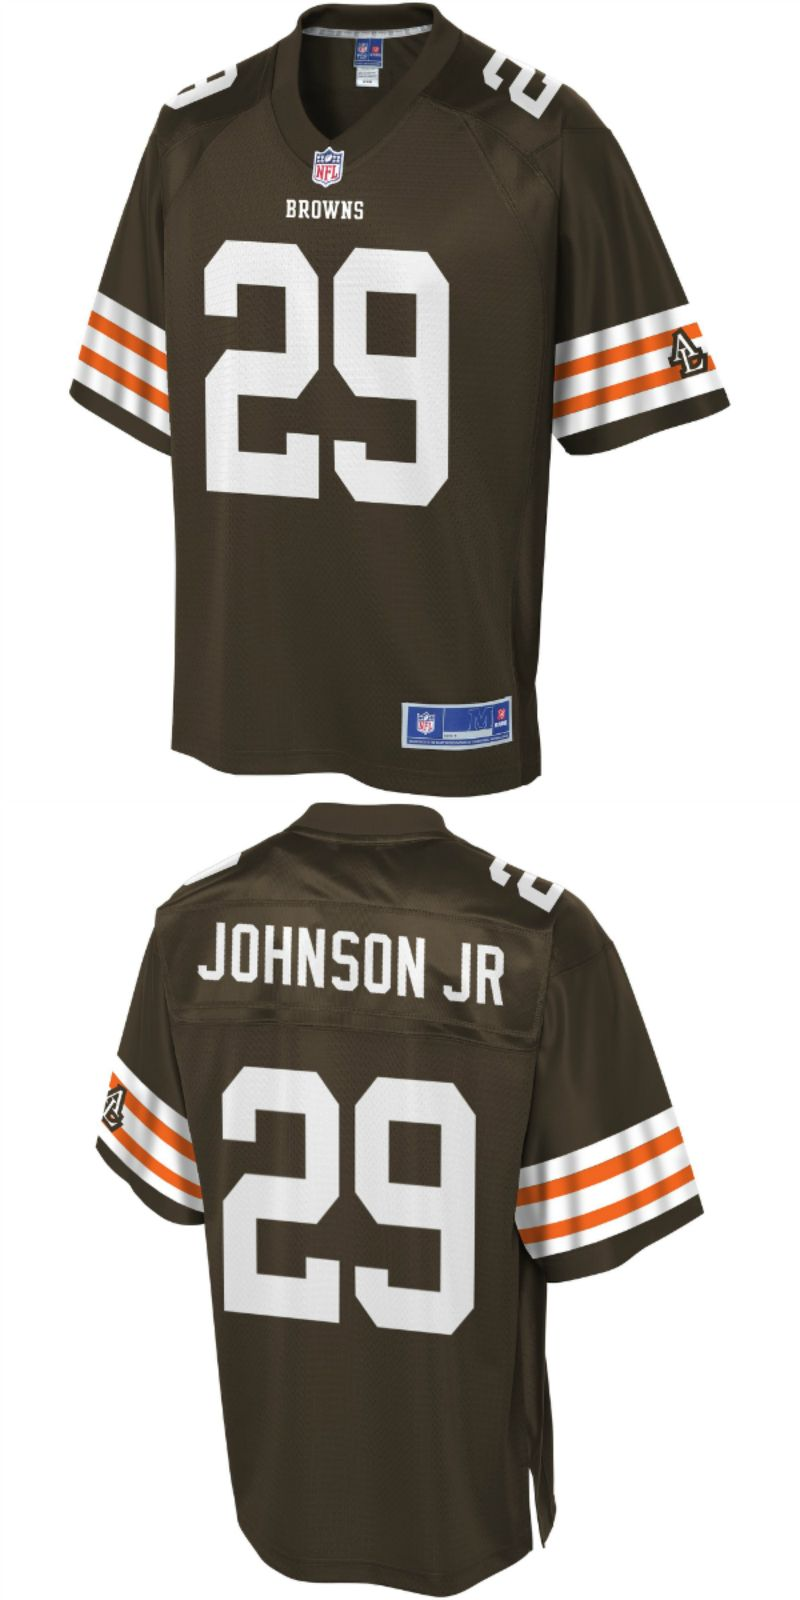 promo code 745ca 98d19 UP TO 70% OFF. Duke Johnson Cleveland Browns NFL Pro Line ...